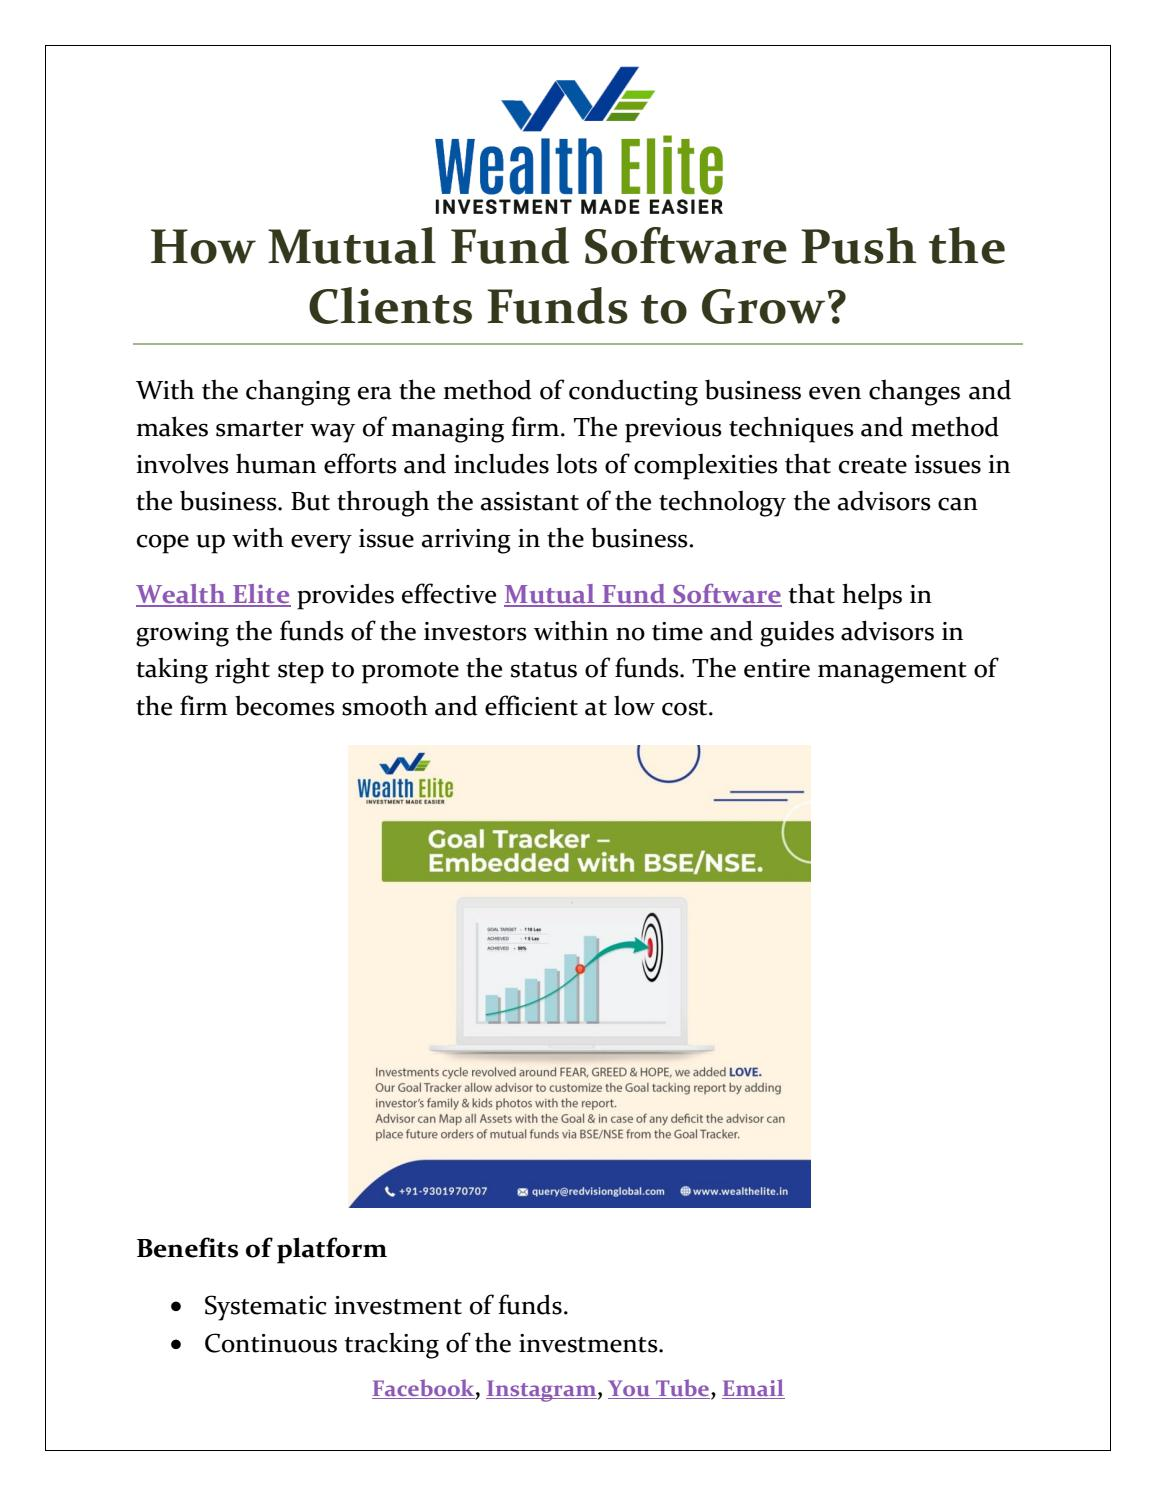 Those advisors looking for best mutual fund software in India should go with Wealth Elite ...